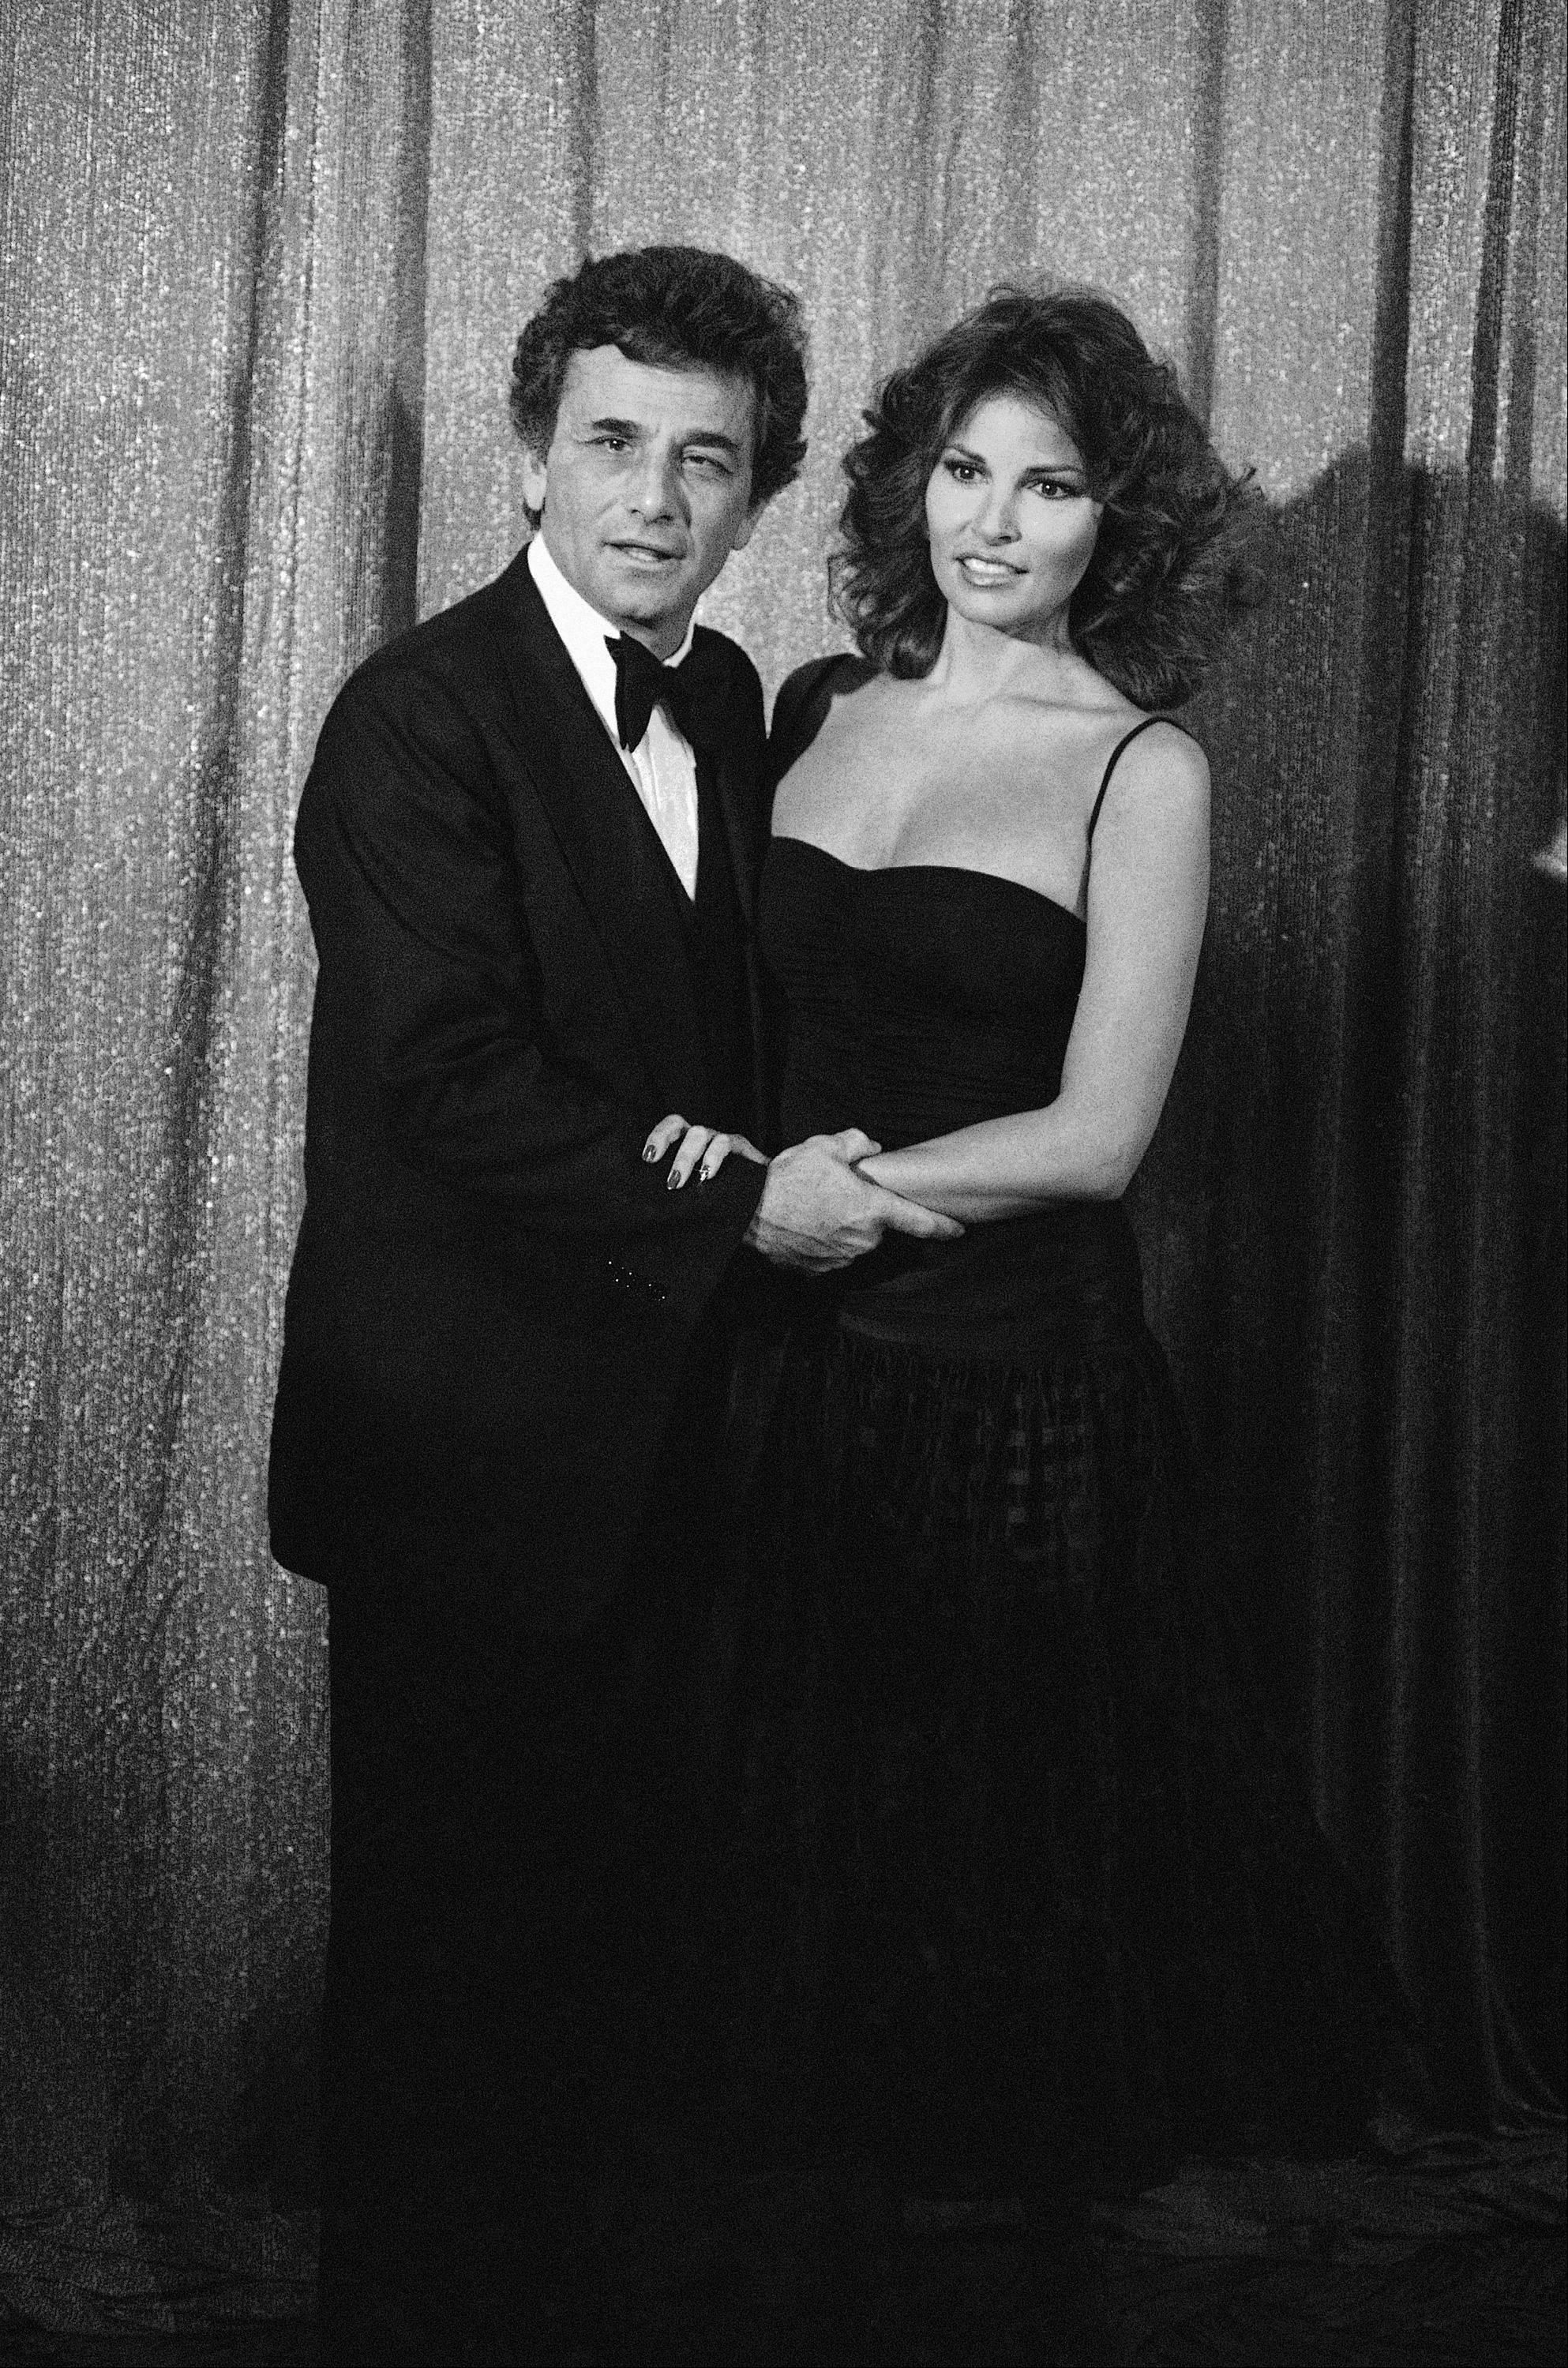 Peter Falk, left, and Raquel Welch at the Golden Globe Awards held in the Beverly Hilton Hotel, Jan. 29, 1977.